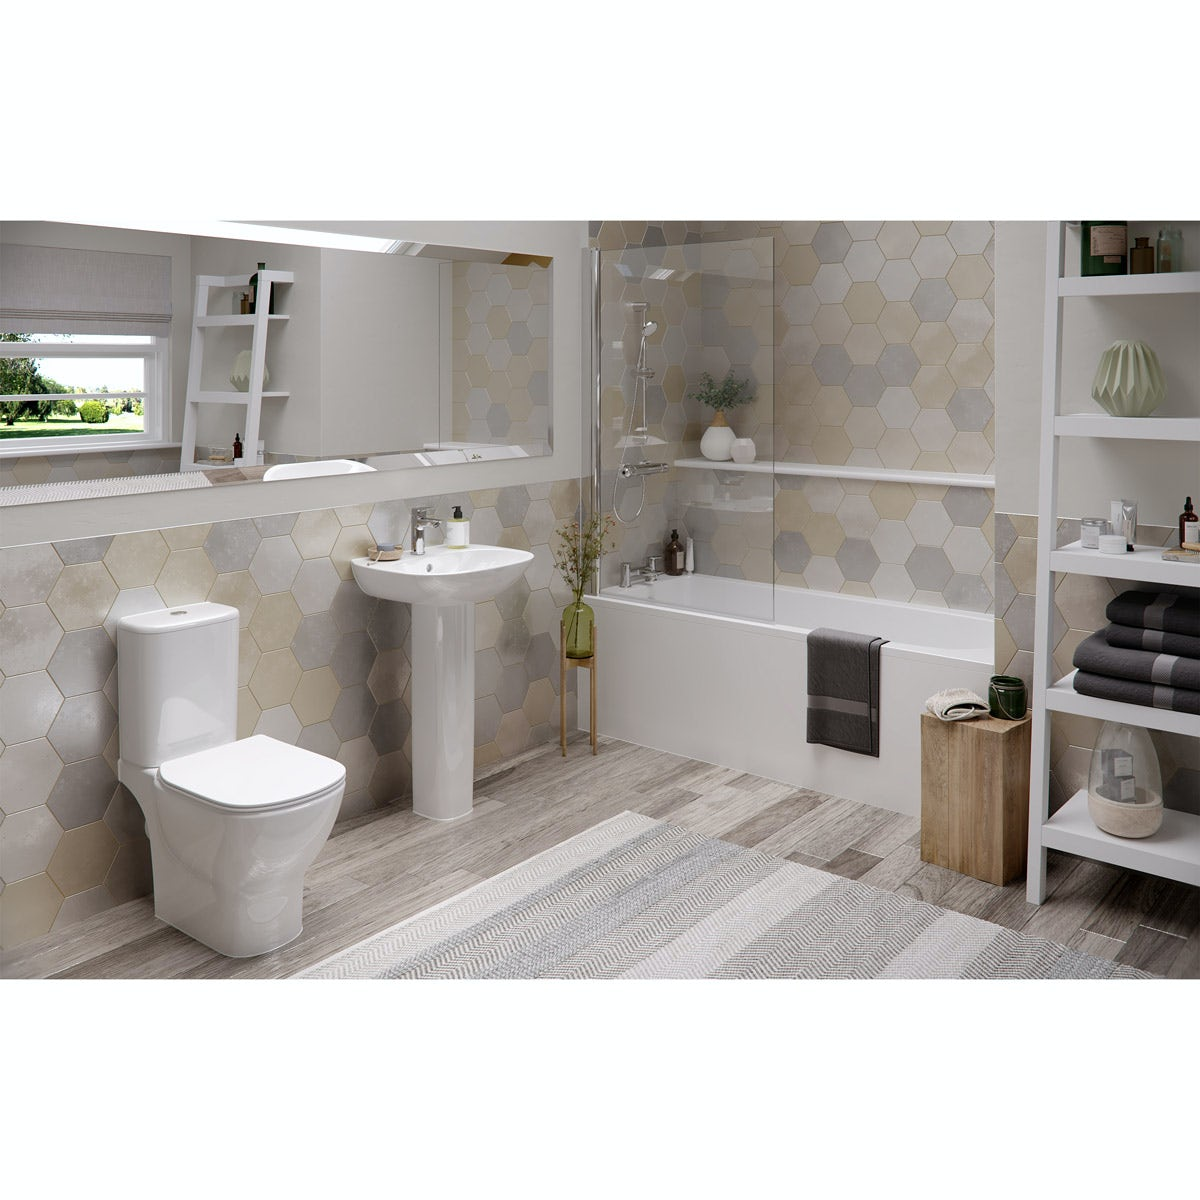 Ideal Standard Tesi complete bathroom suite with straight bath, bath screen, taps, shower, panel and waste